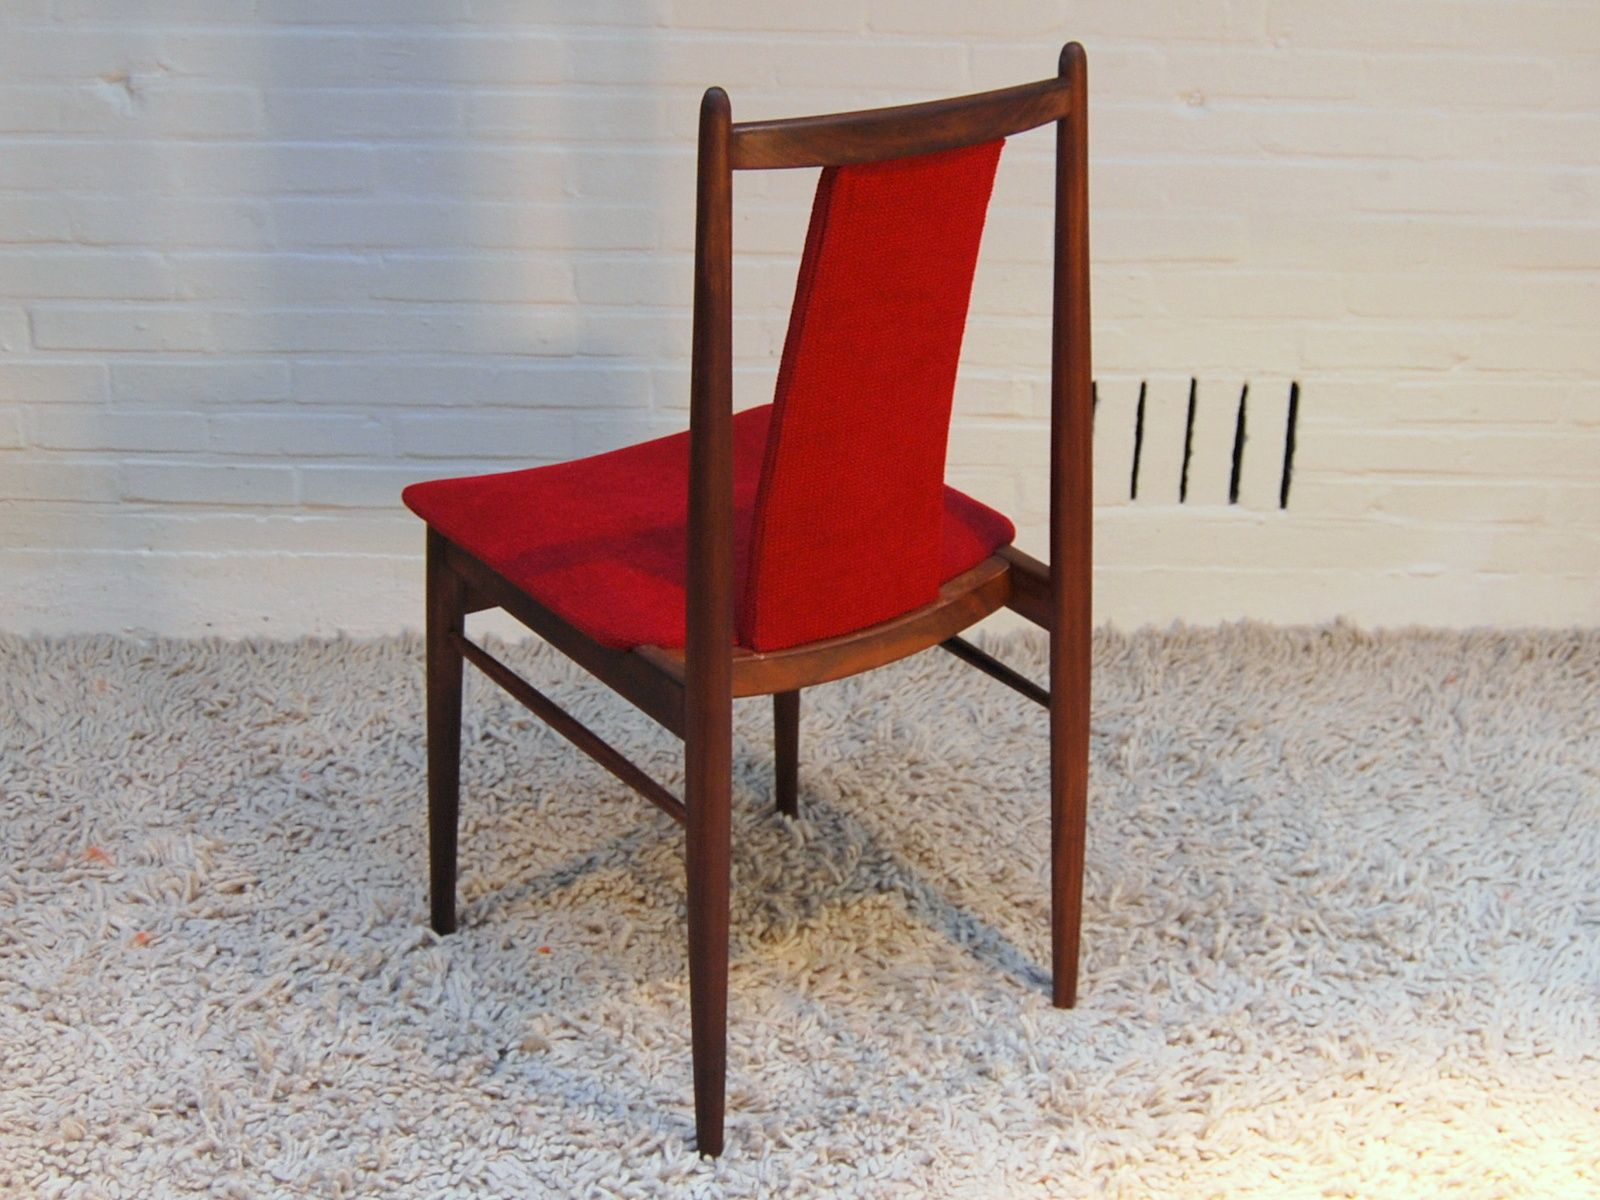 Red dining chairs from topform 1955 set of 7 for sale at for Red dining chairs for sale